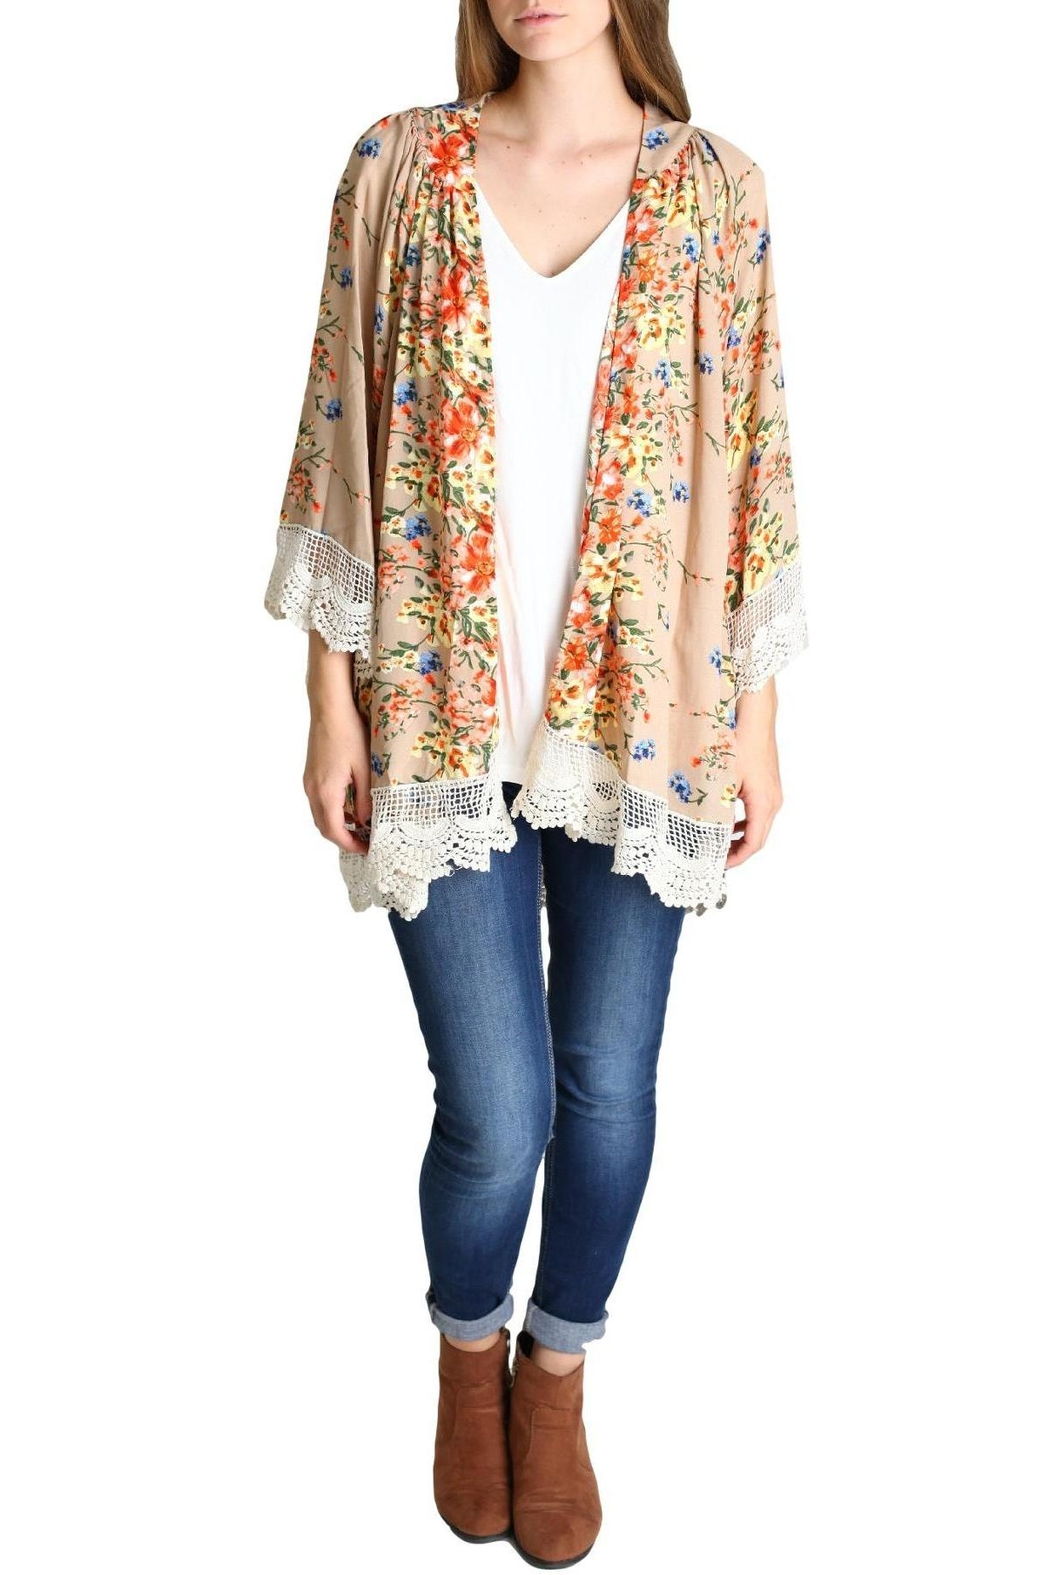 Umgee USA Flower Bomb Kimono Top - Front Cropped Image